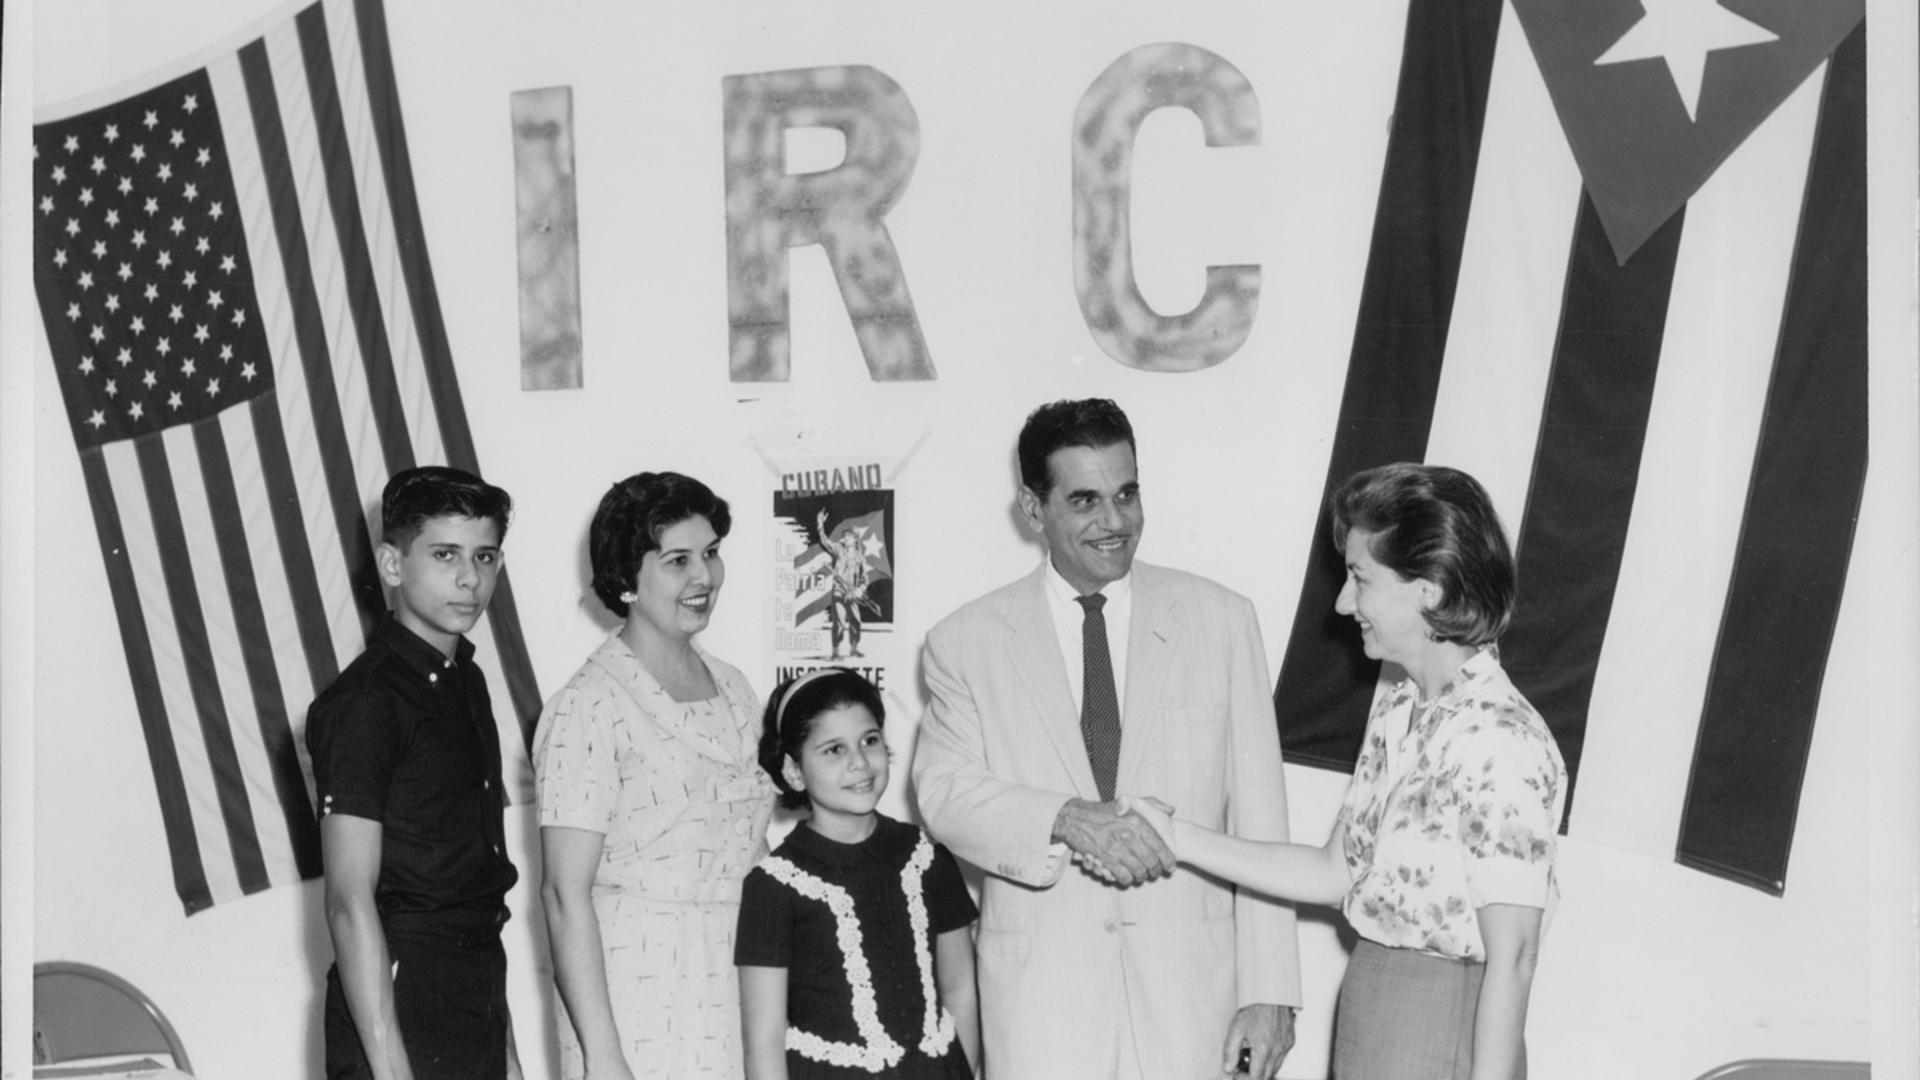 A Cuban family of four is greeted by an American IRC worker, standing in front of a wall over which a Cuban flag and a U.S. flag hang side-by-side